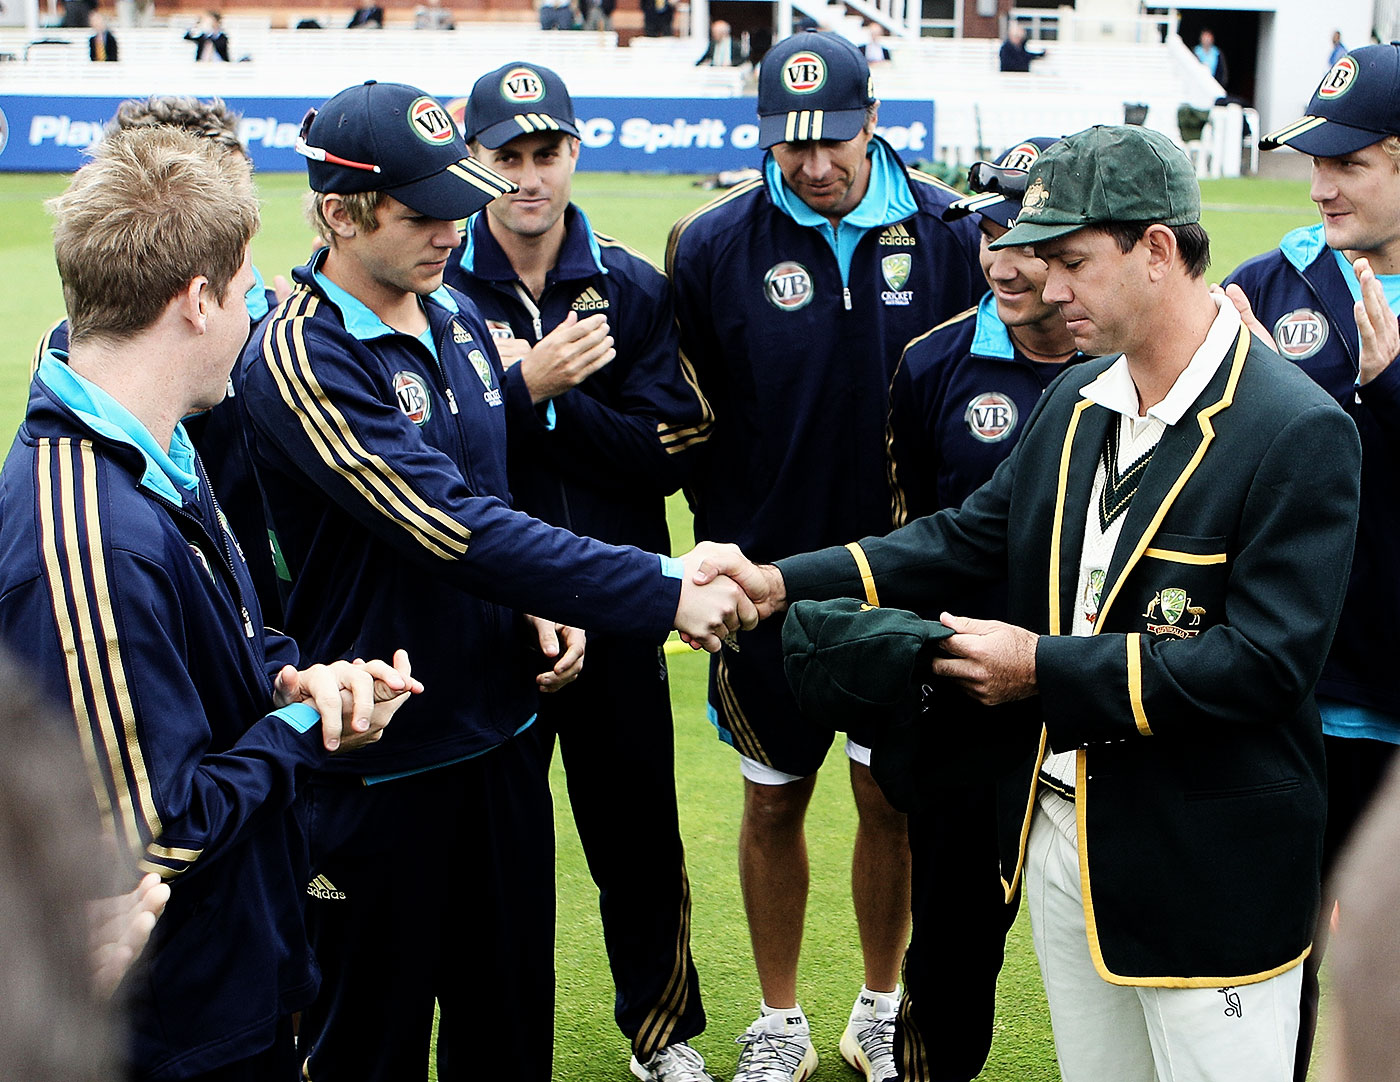 From one captain to another: Paine receives his baggy green from Ricky Ponting at Lord's in 2010